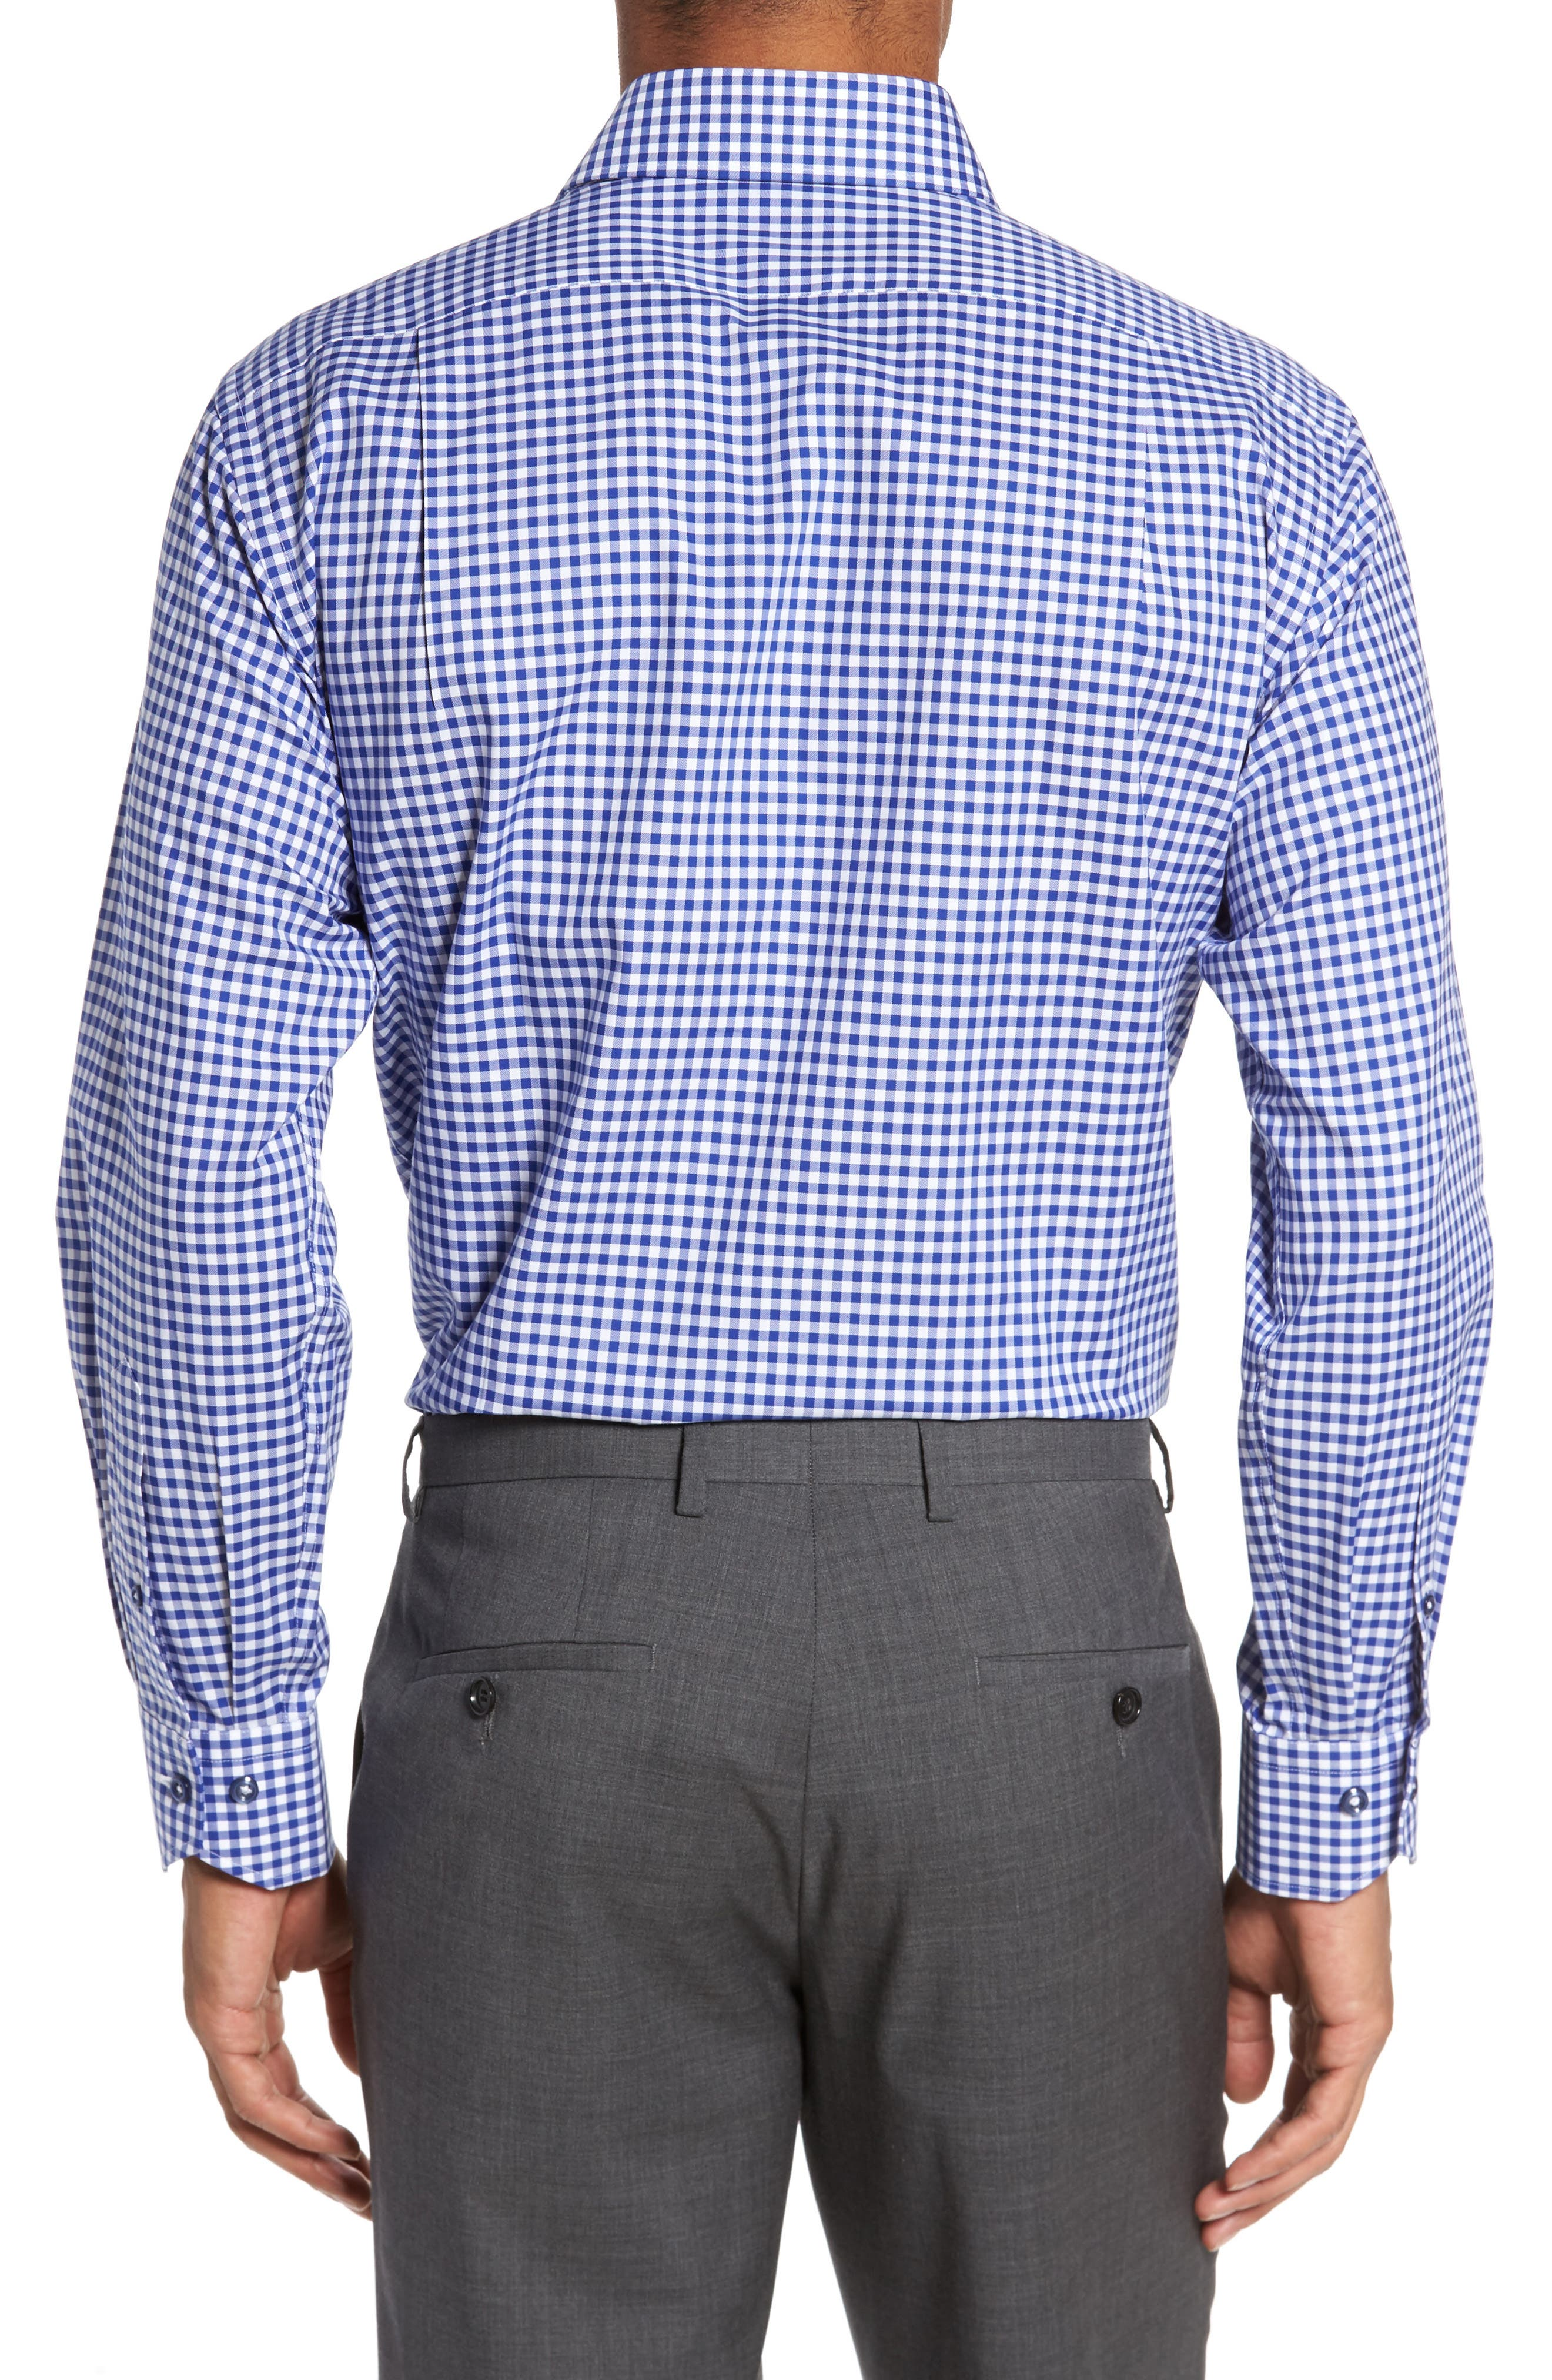 Trim Fit Textured Gingham Dress Shirt,                             Alternate thumbnail 2, color,                             Navy